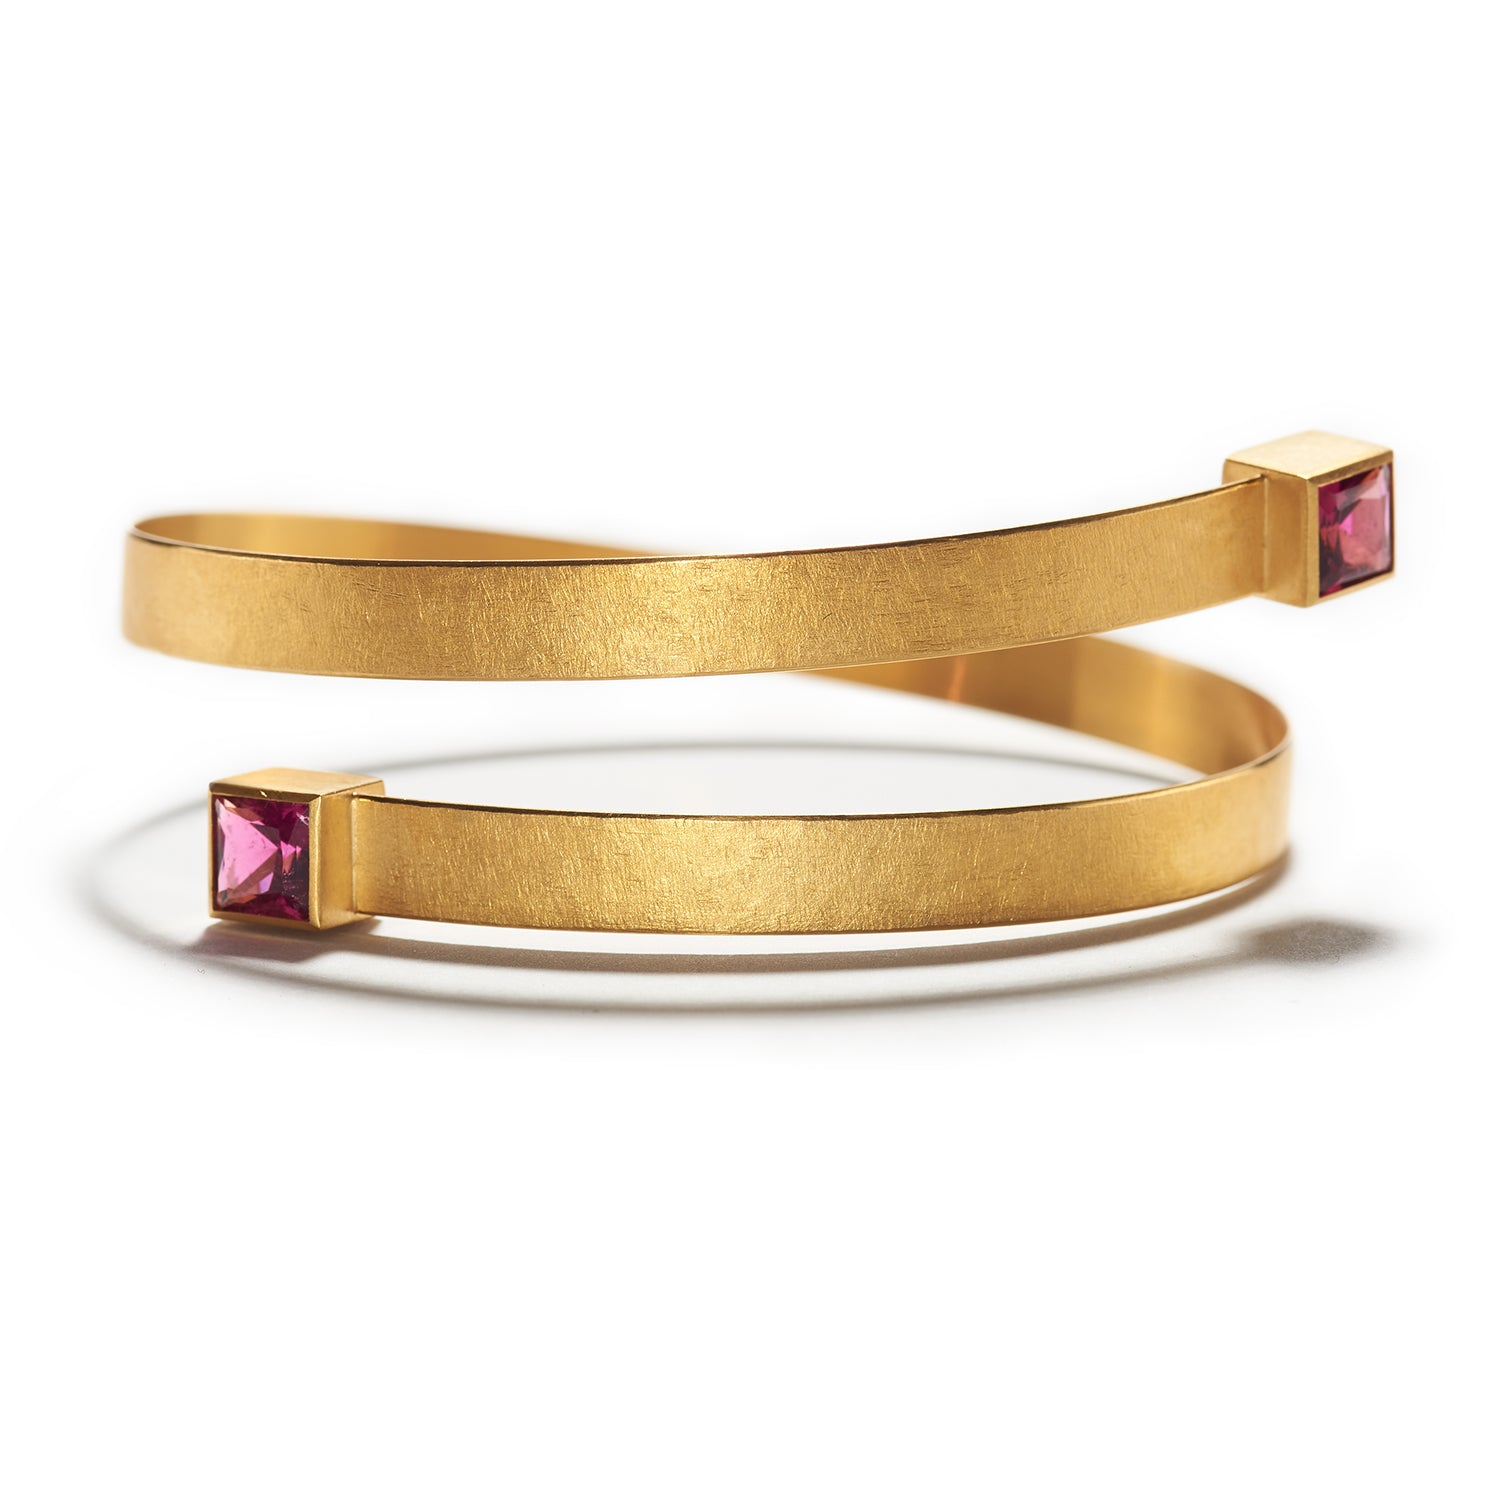 Pasch Bracelet with Tourmaline